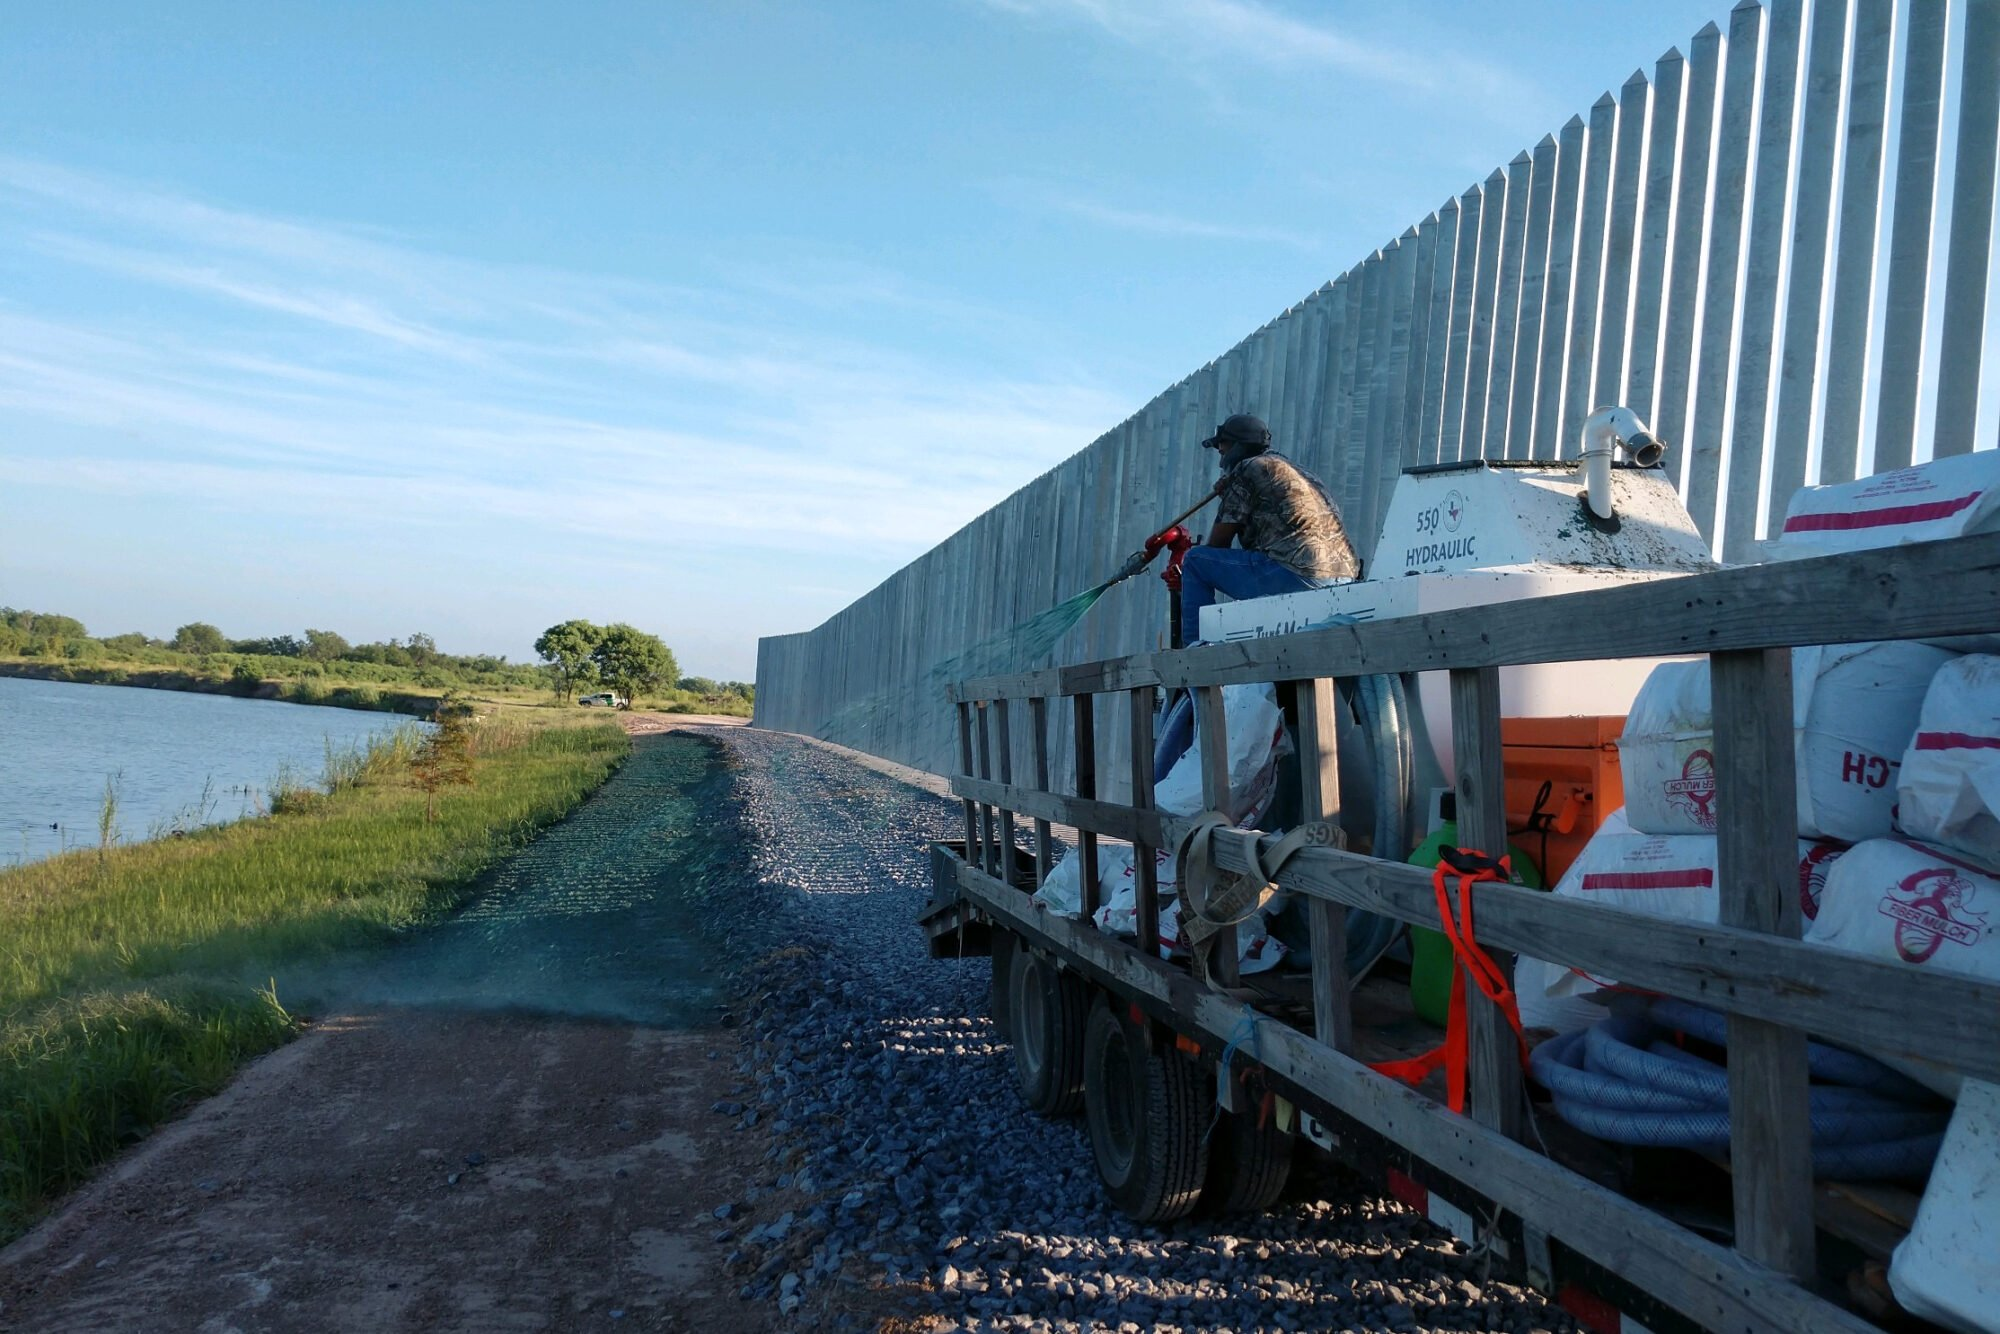 New Engineering Report Finds Privately Built Border Wall Will Fail